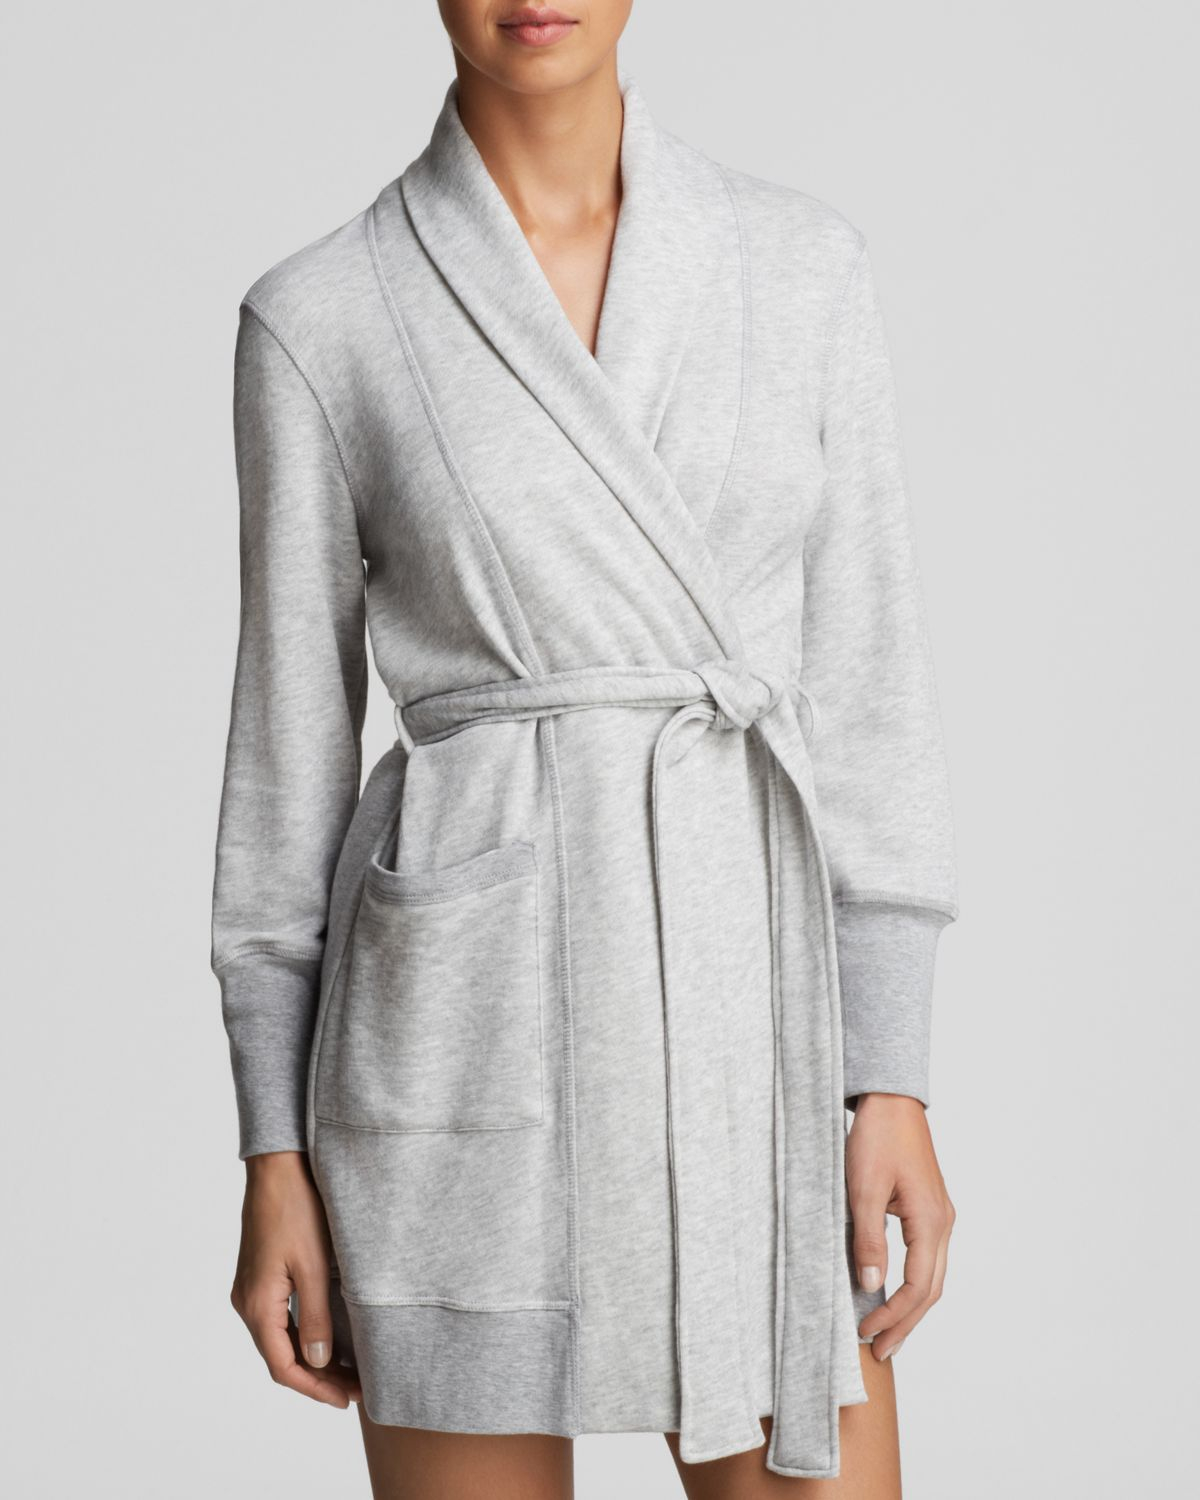 Lyst - Jane   Bleecker New York French Terry Robe in Gray 22d795f10